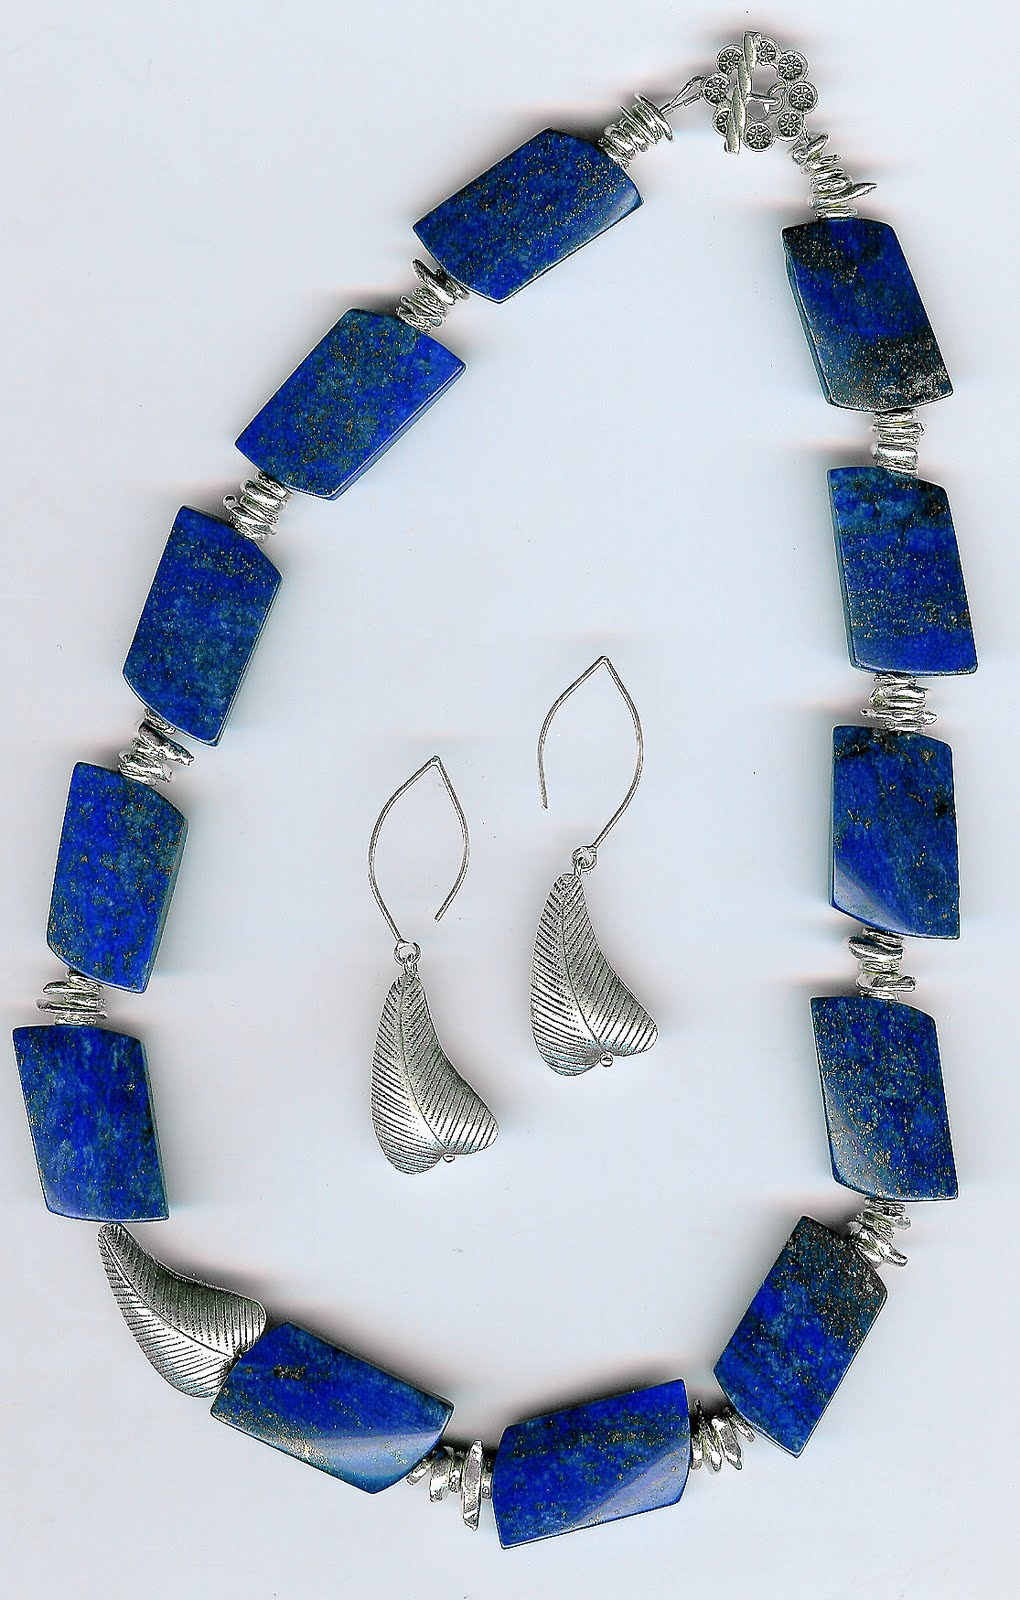 183. Lapis Lazuli with Karen Hill Thai Sterling Silver + Earrings